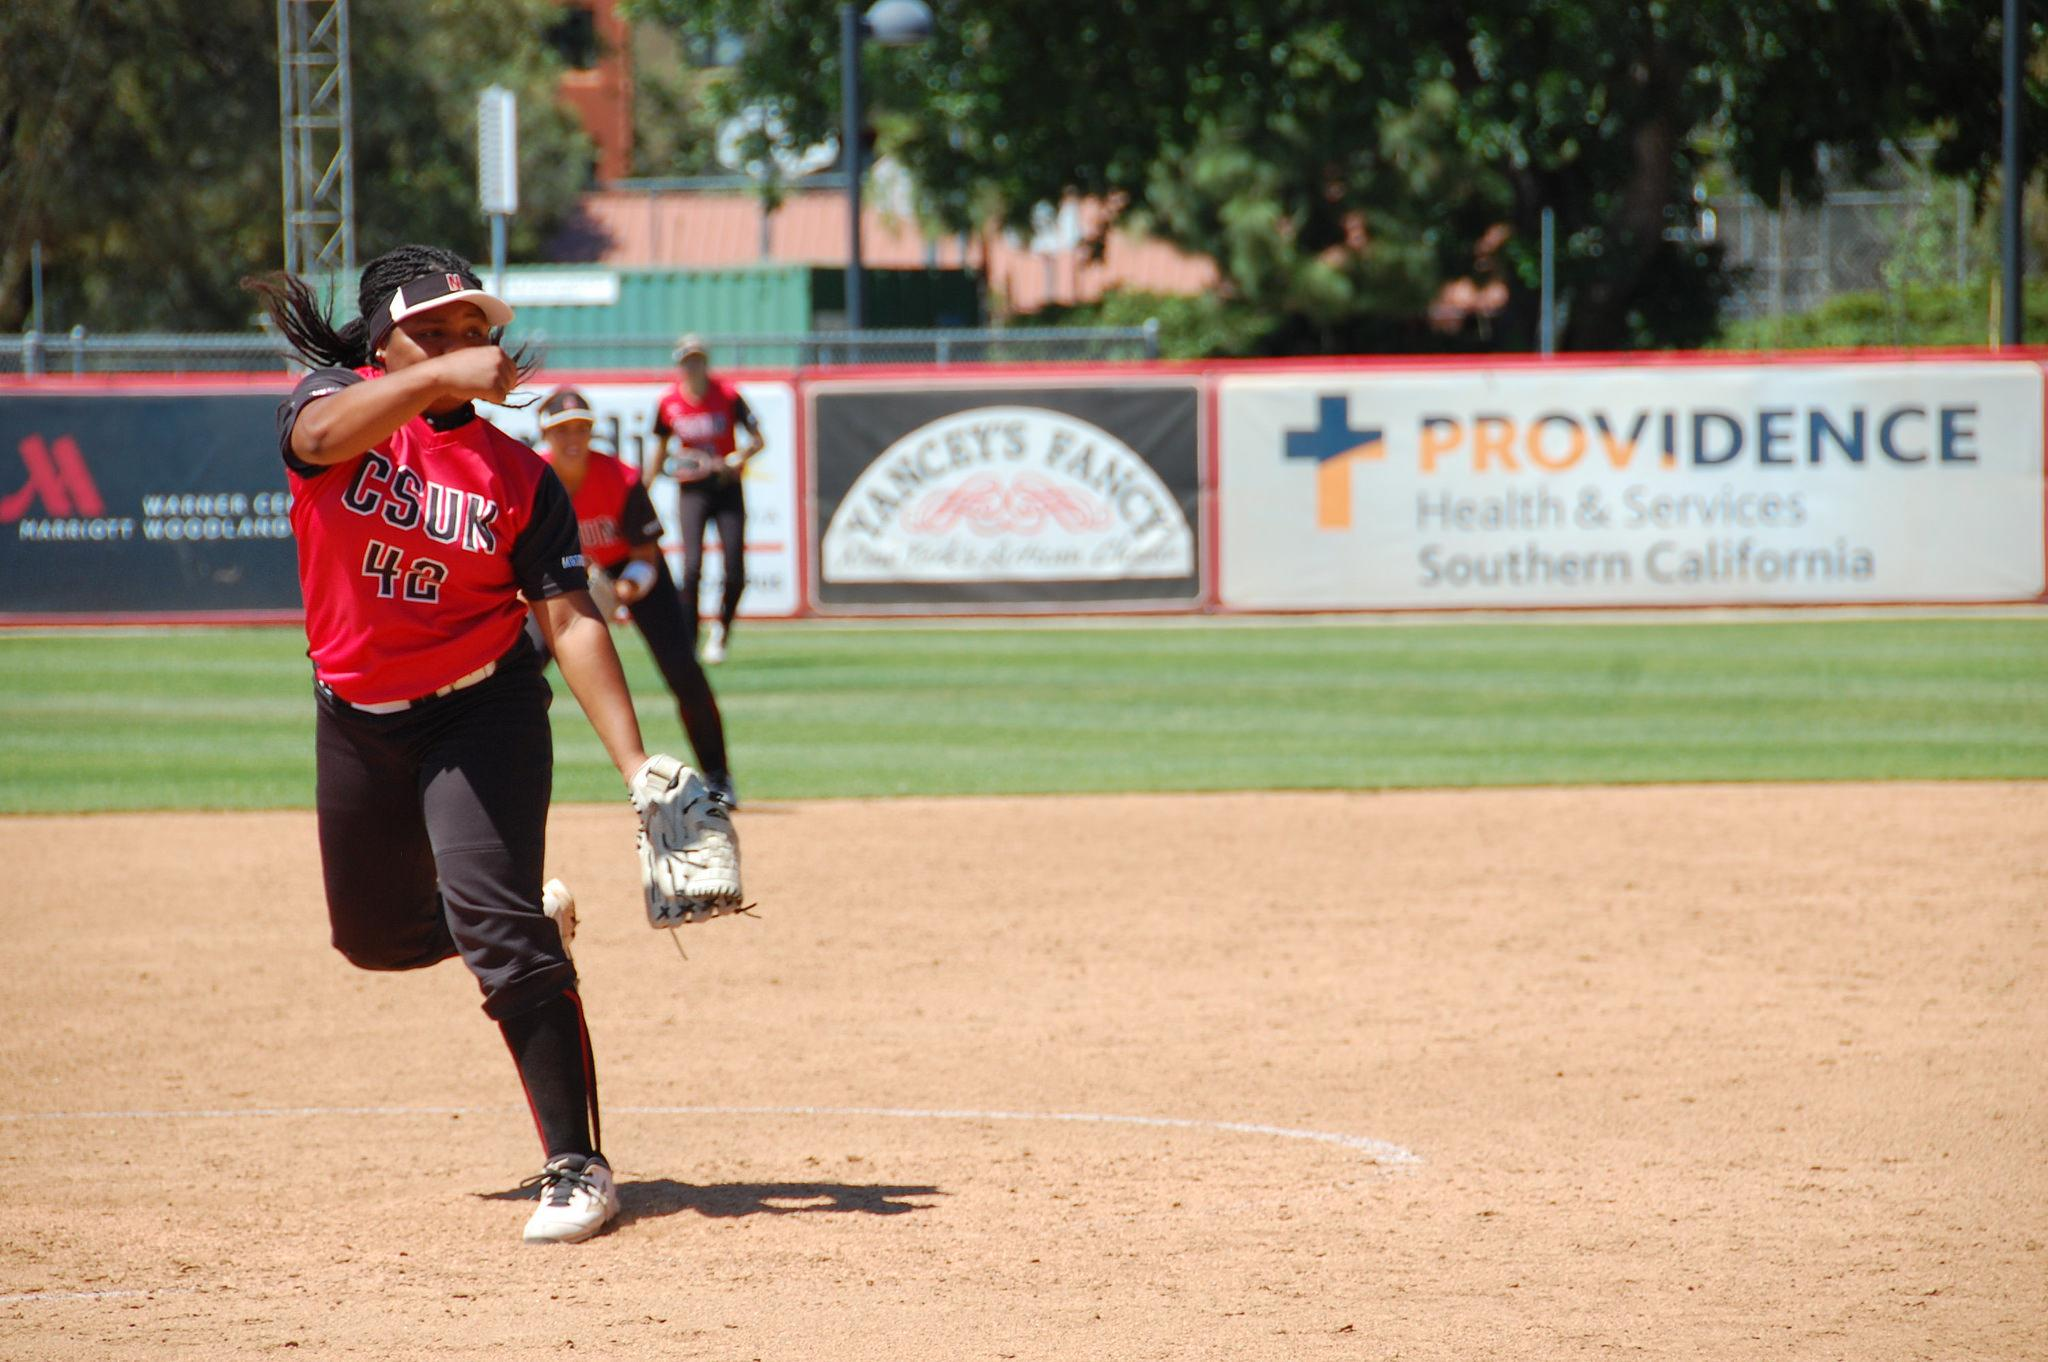 Zoe+Conley+pitches+during+CSUN%27s+2-0+victory+over+the+University+of+Hawai%27i.+Cladellain+David%2FPhoto+Editor